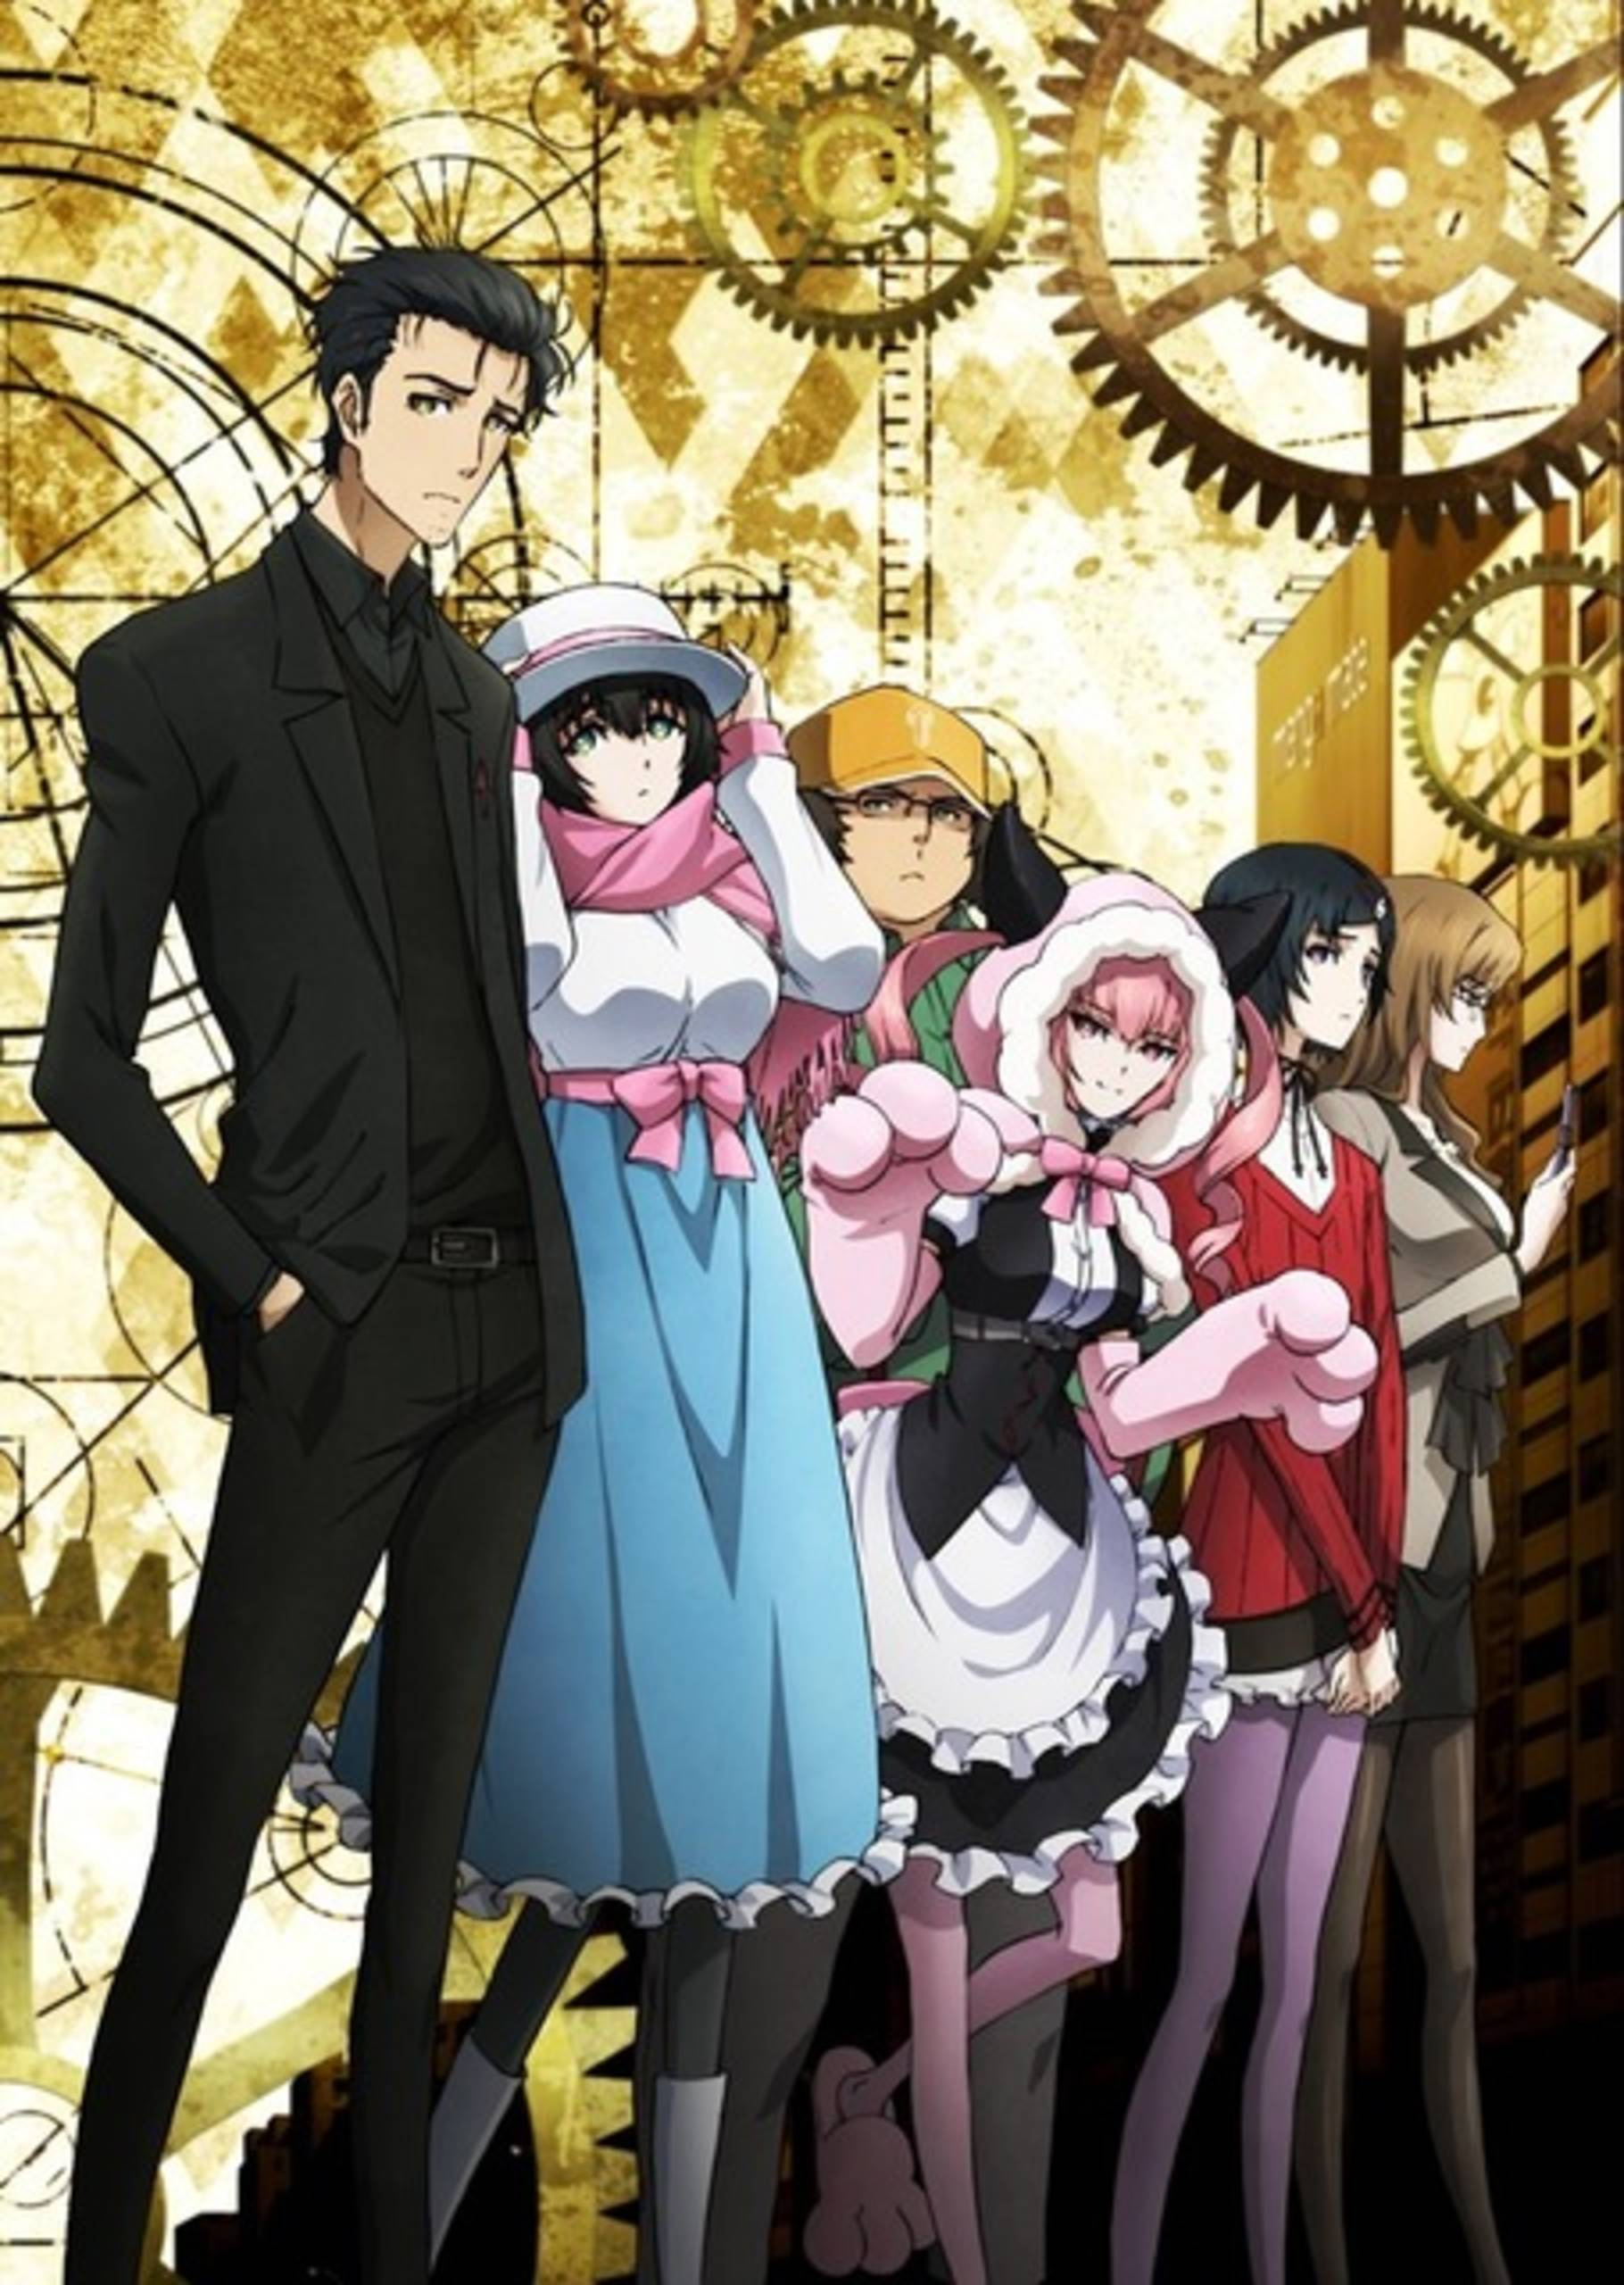 steins gate 0 official poster anime